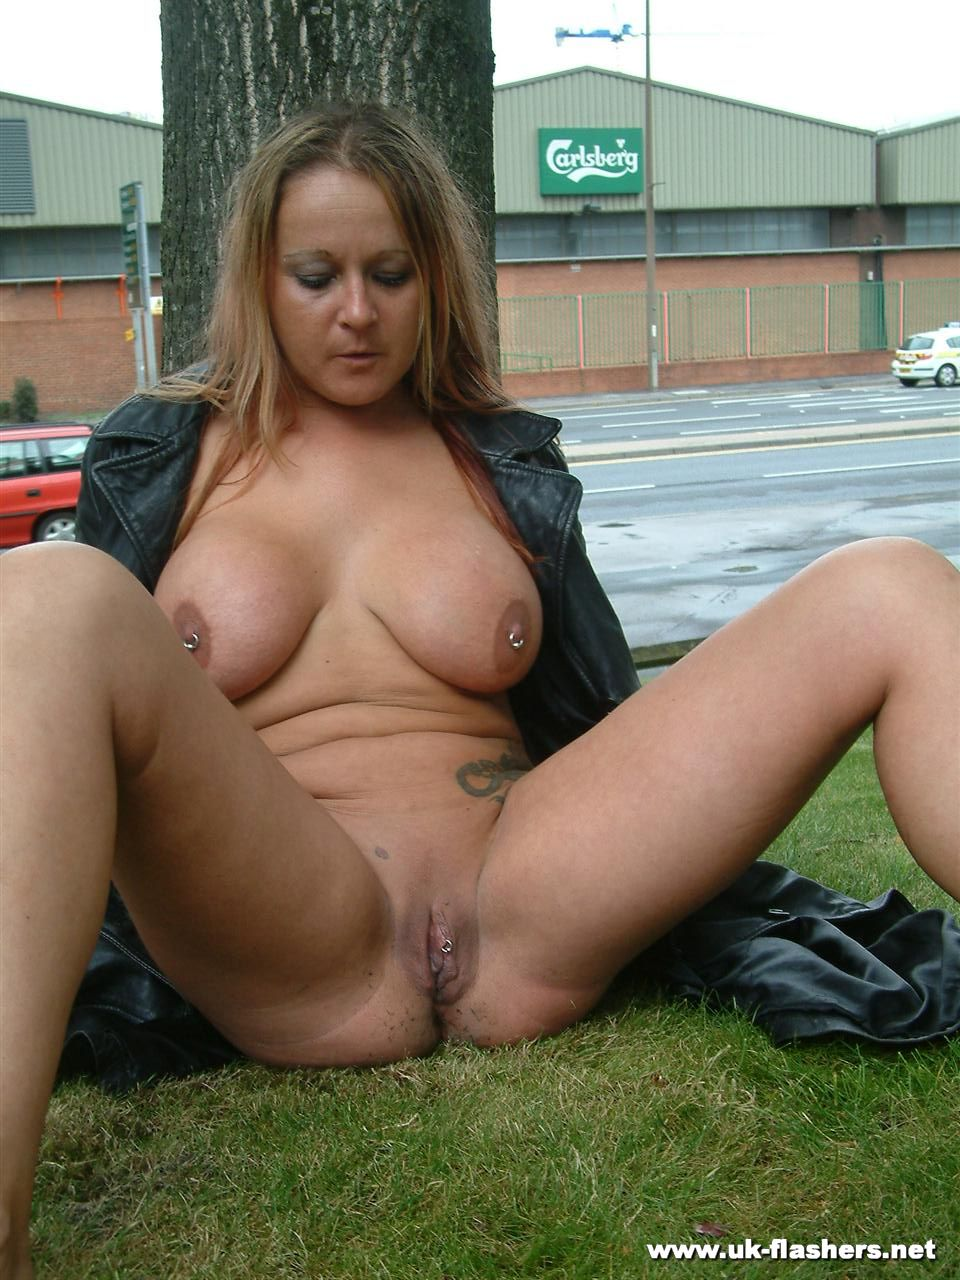 Wife exhibitionist naked public